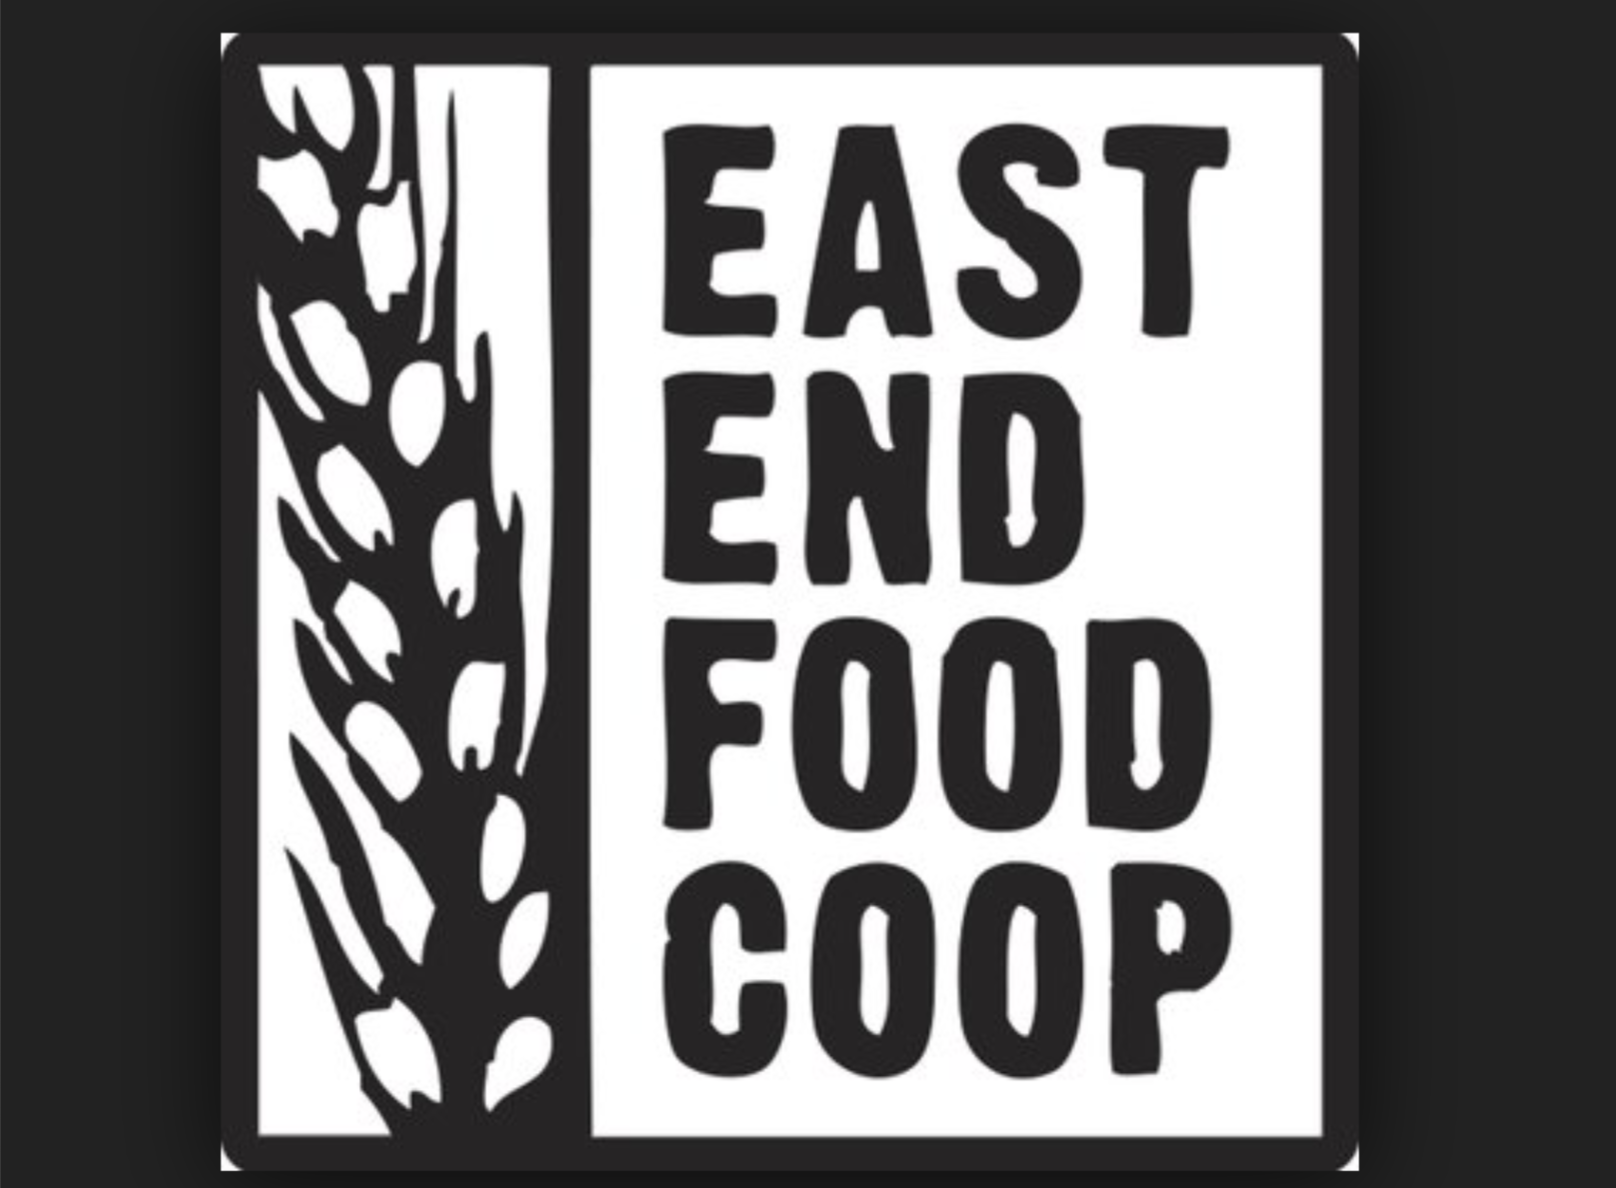 Photo from East End Food Coop